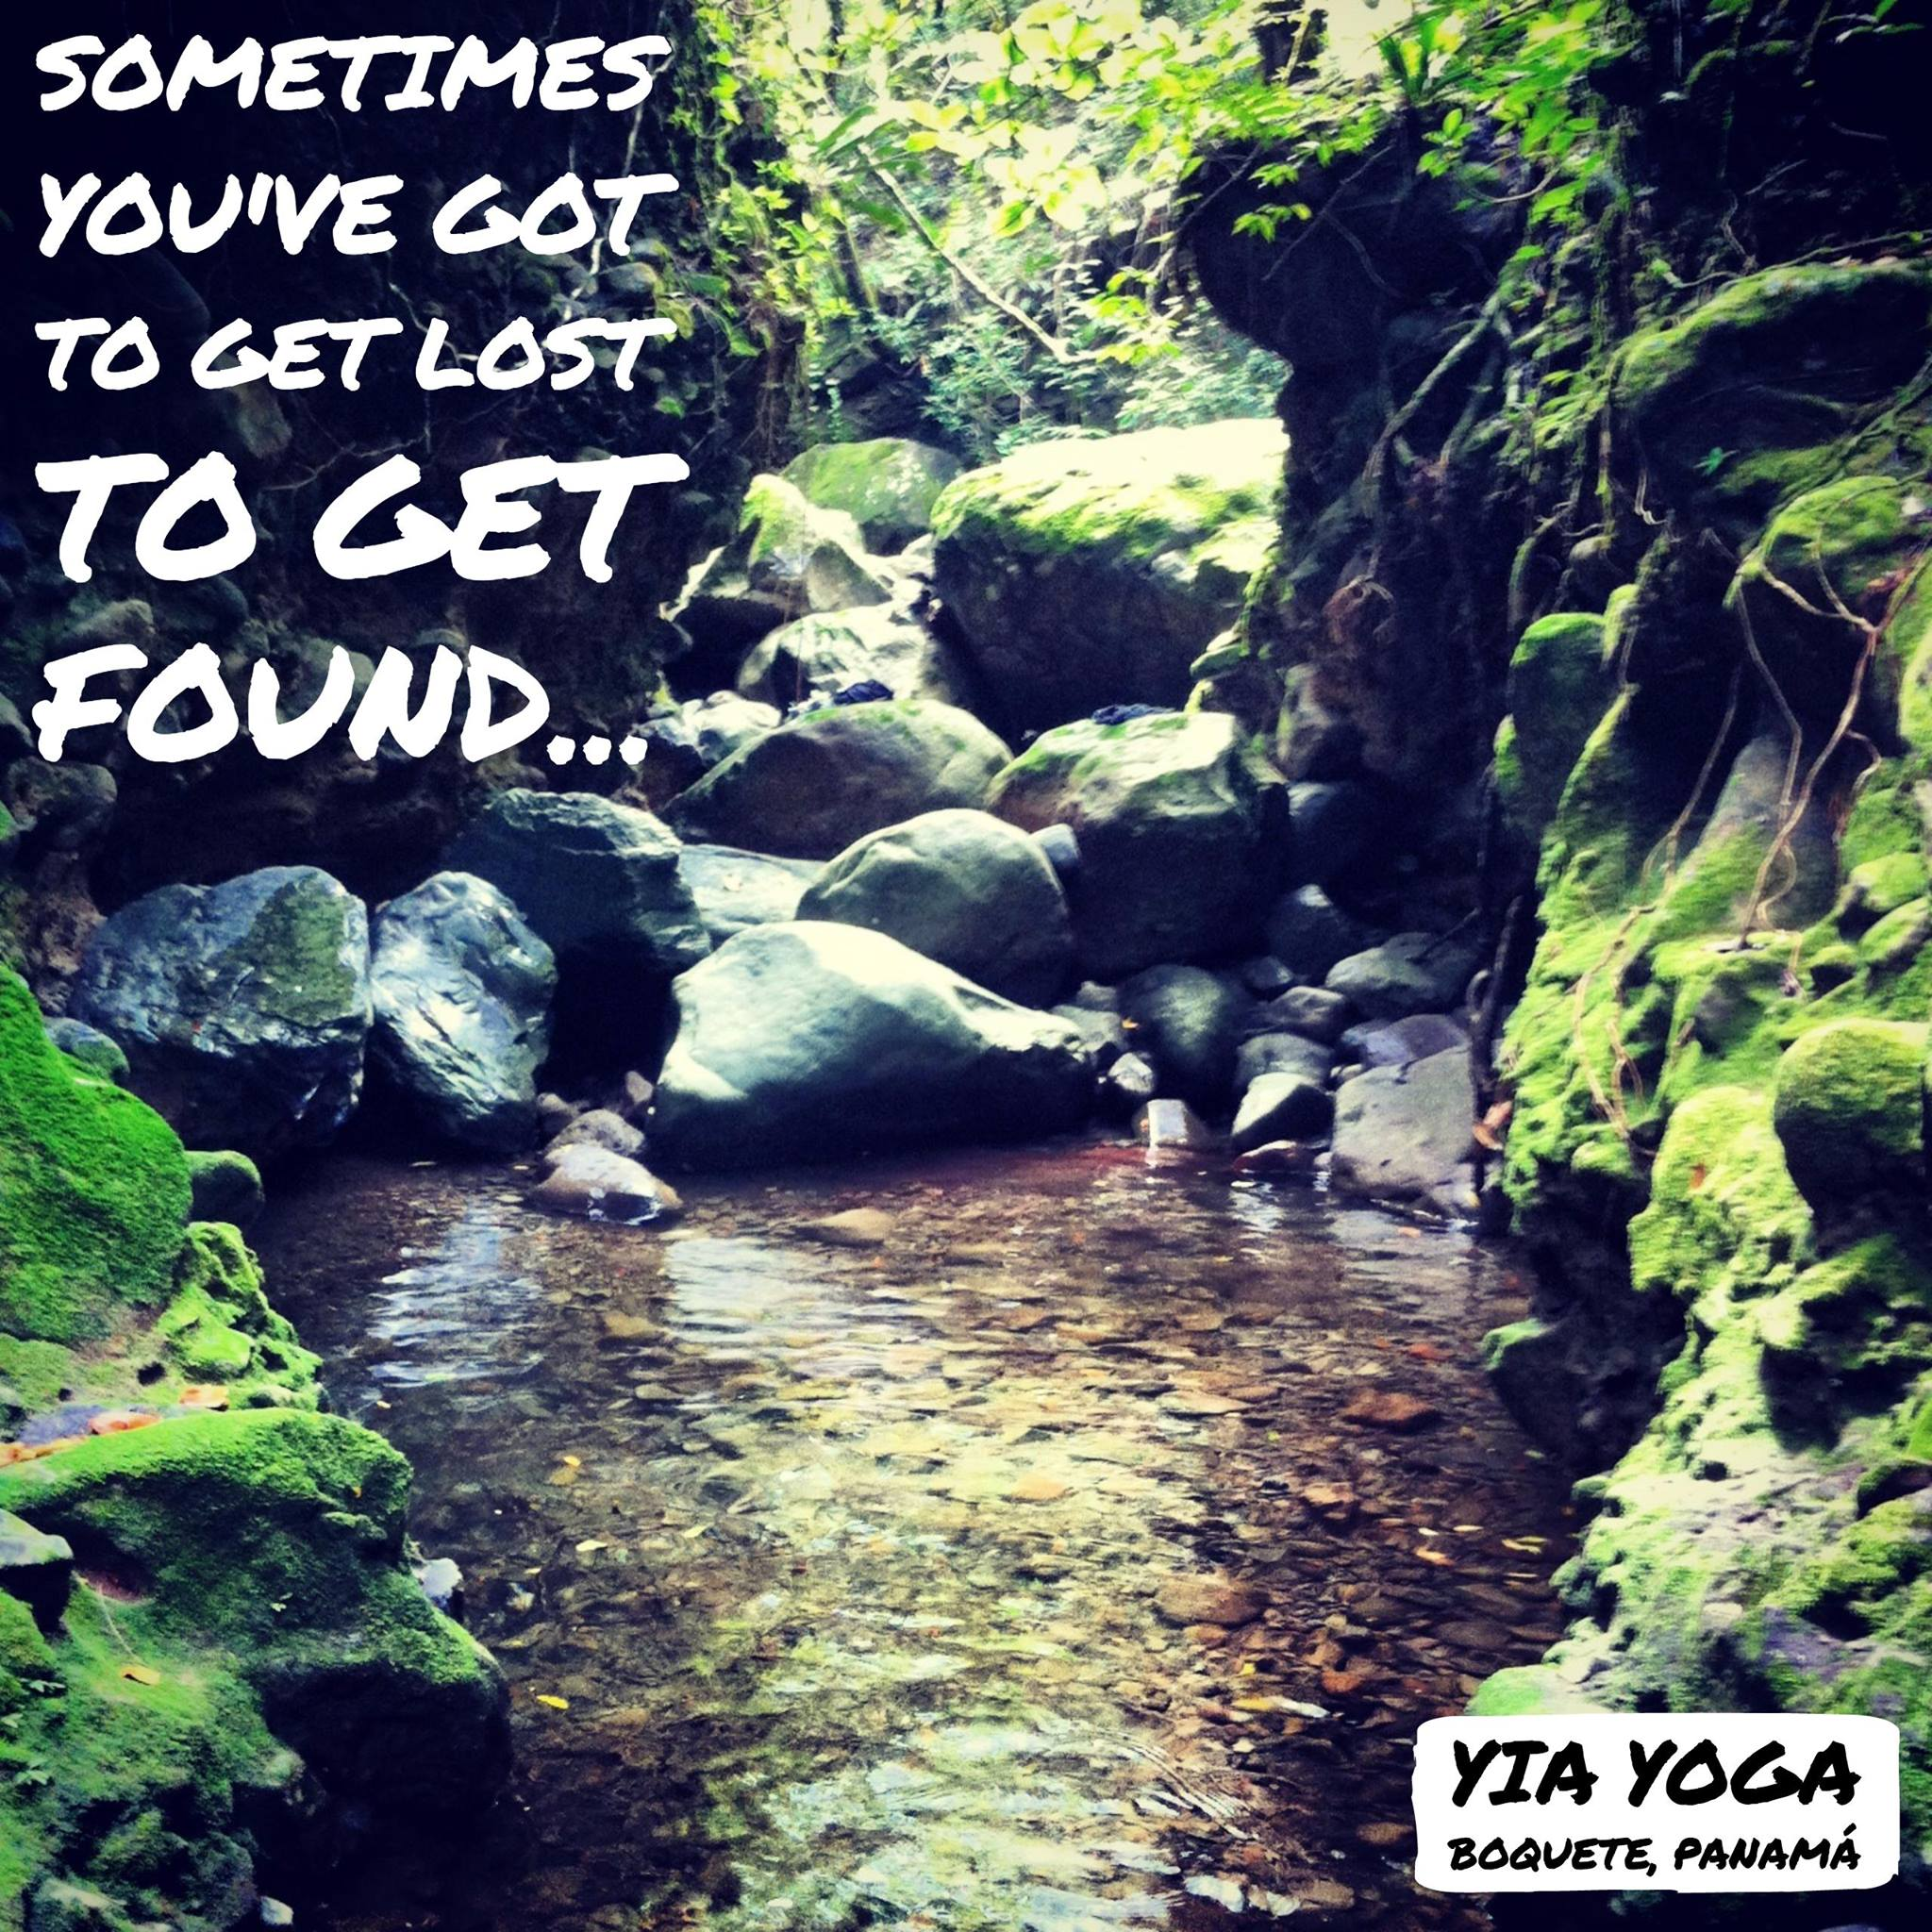 Join us on the journey within... - Join us to expand your knowledge and significance of the expansive world and holistic approach of yoga and Ayurveda by joining YiA Yoga for a 300-hour advanced yoga teacher training in the picturesque calming tropical mountains of beautiful Boquete, Panama. During this journey, you will explore the wisdom and abundant compassion of Tantric philosophy to further illuminate the innate goodness and empower unconditional love for yourself and those around you.You will tap into the energy of sacred sexuality by exploring Brahmacharya and expand the love, acceptance, and proper care of your physical body, your private temple, through the guidance of Ayurvedic practices. You will explore various types of meditation, physical alignment of postures, safe adjustment techniques, yoga anatomy, chakras, nadis, and much more. Most importantly, you will hold sacred space for each one of you as you journey through your personal transformation, united as one.